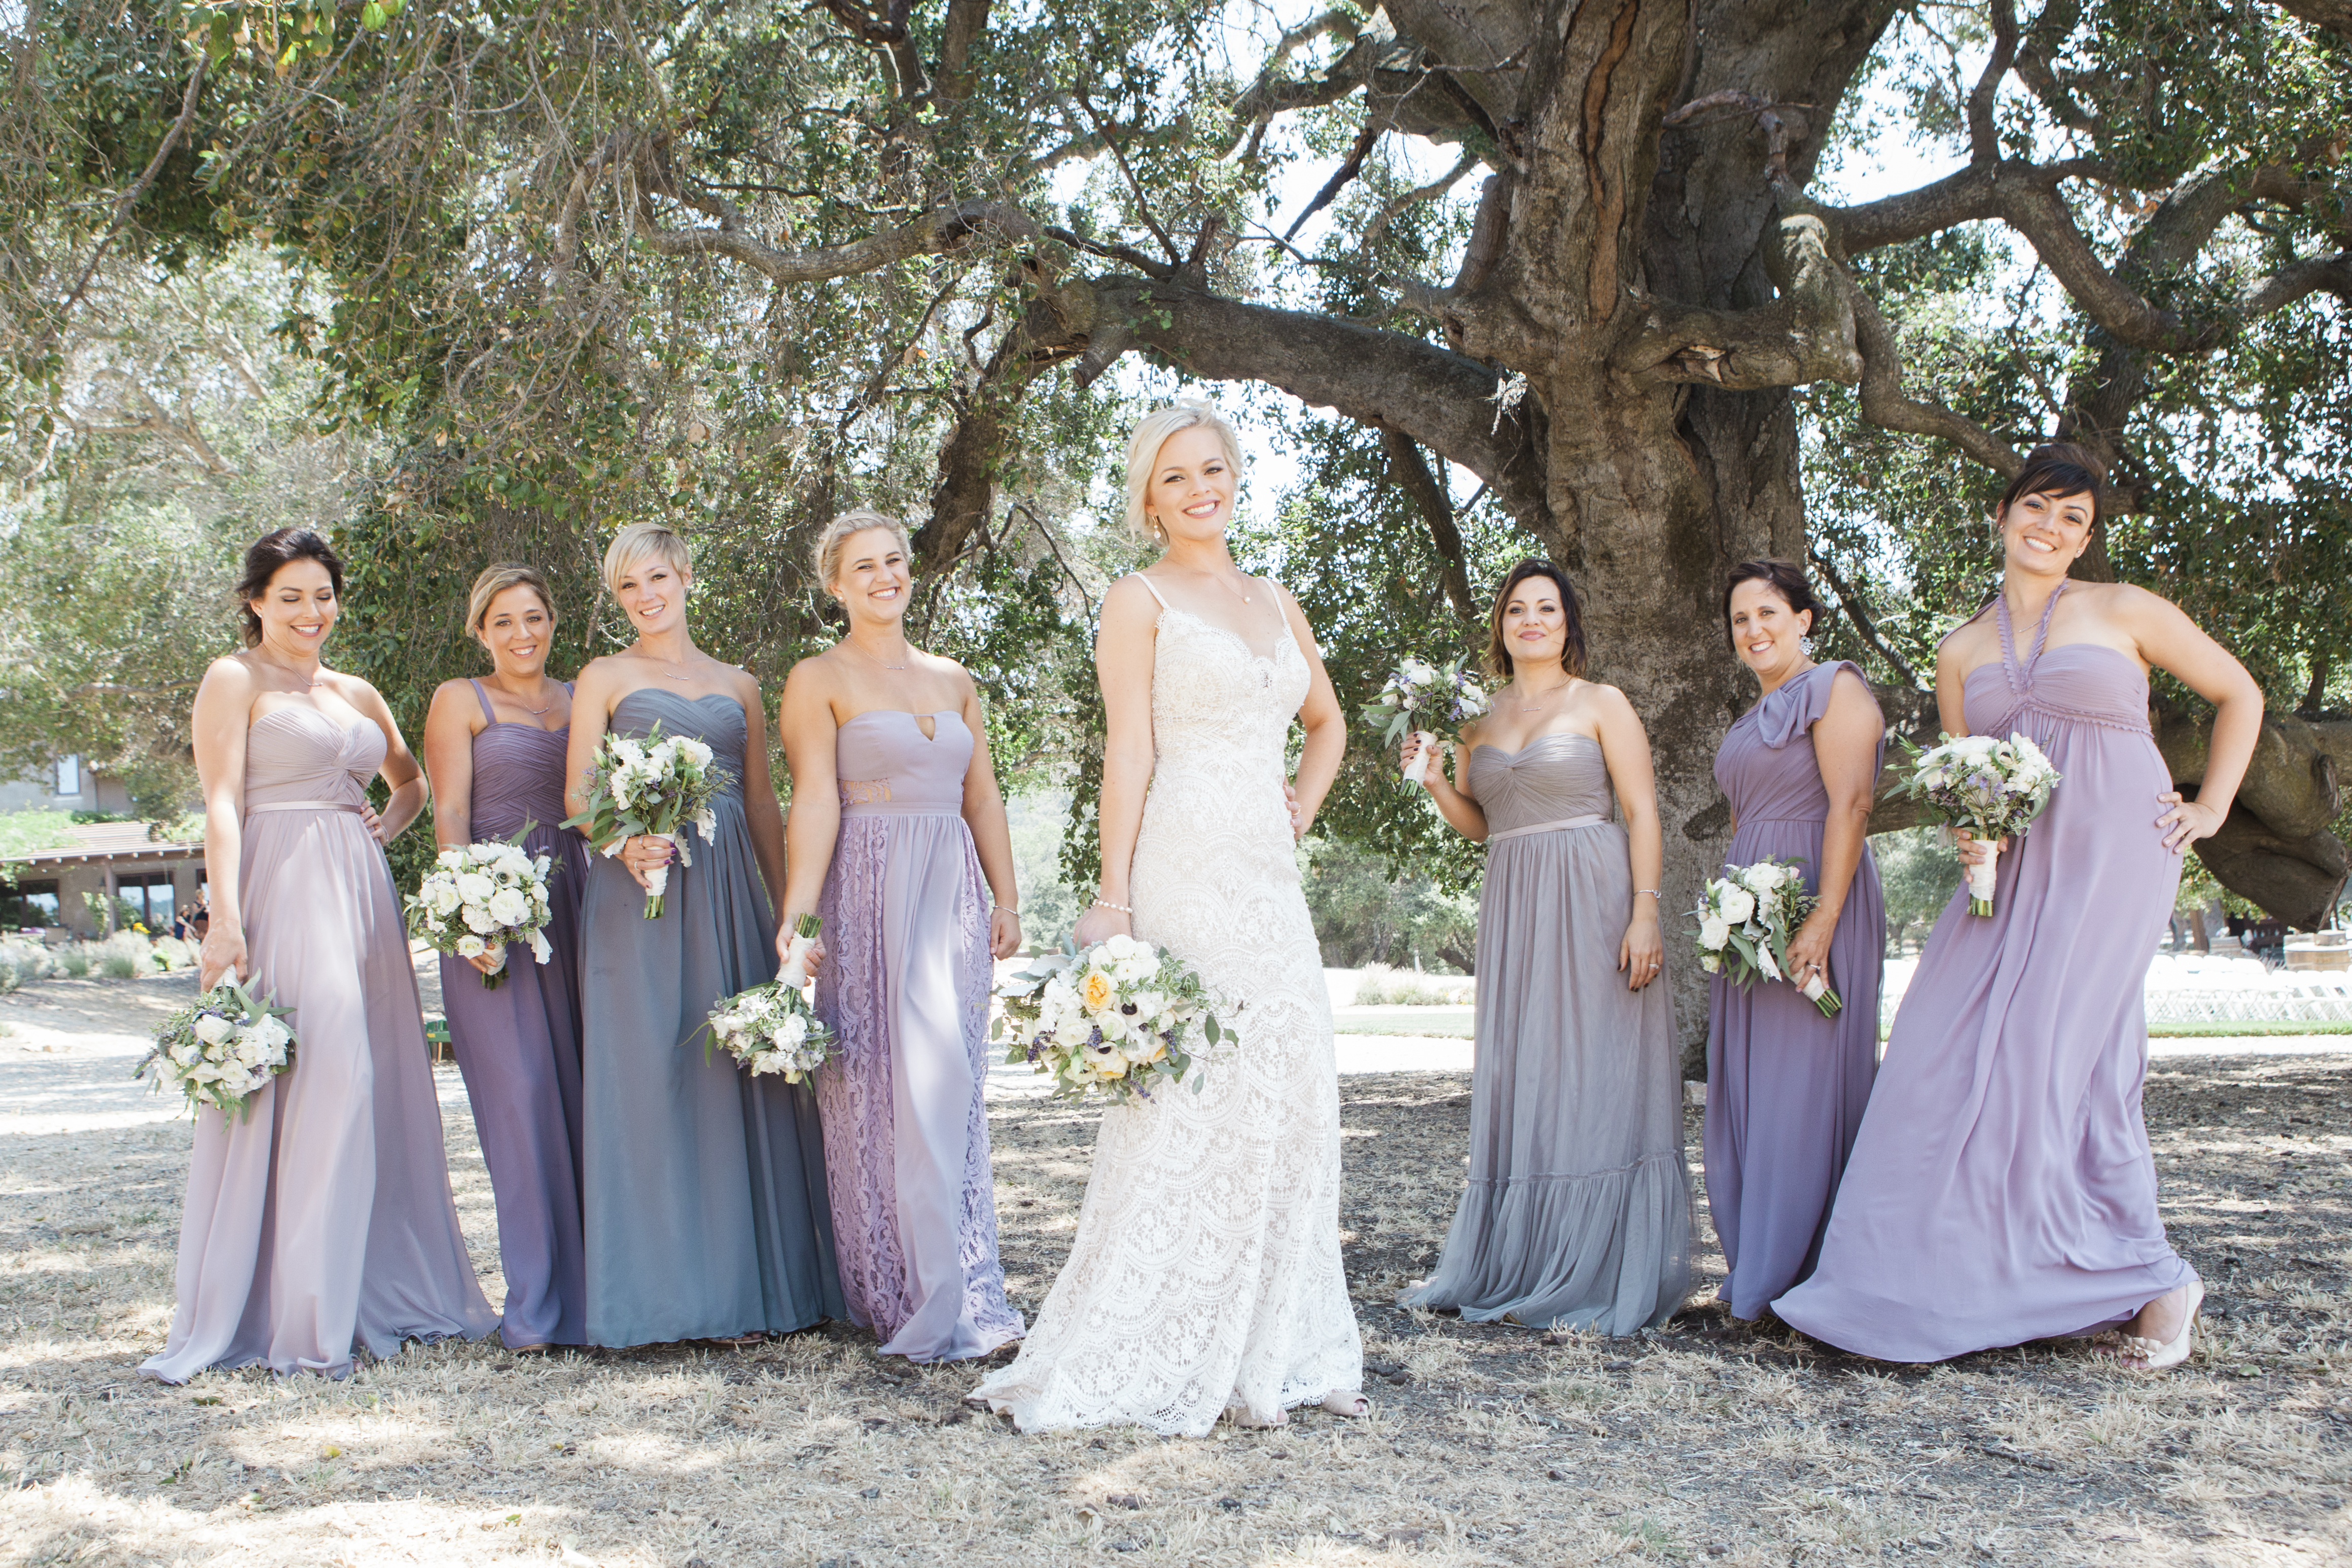 Loomis Ranch-Shannon McMillen Photography-23